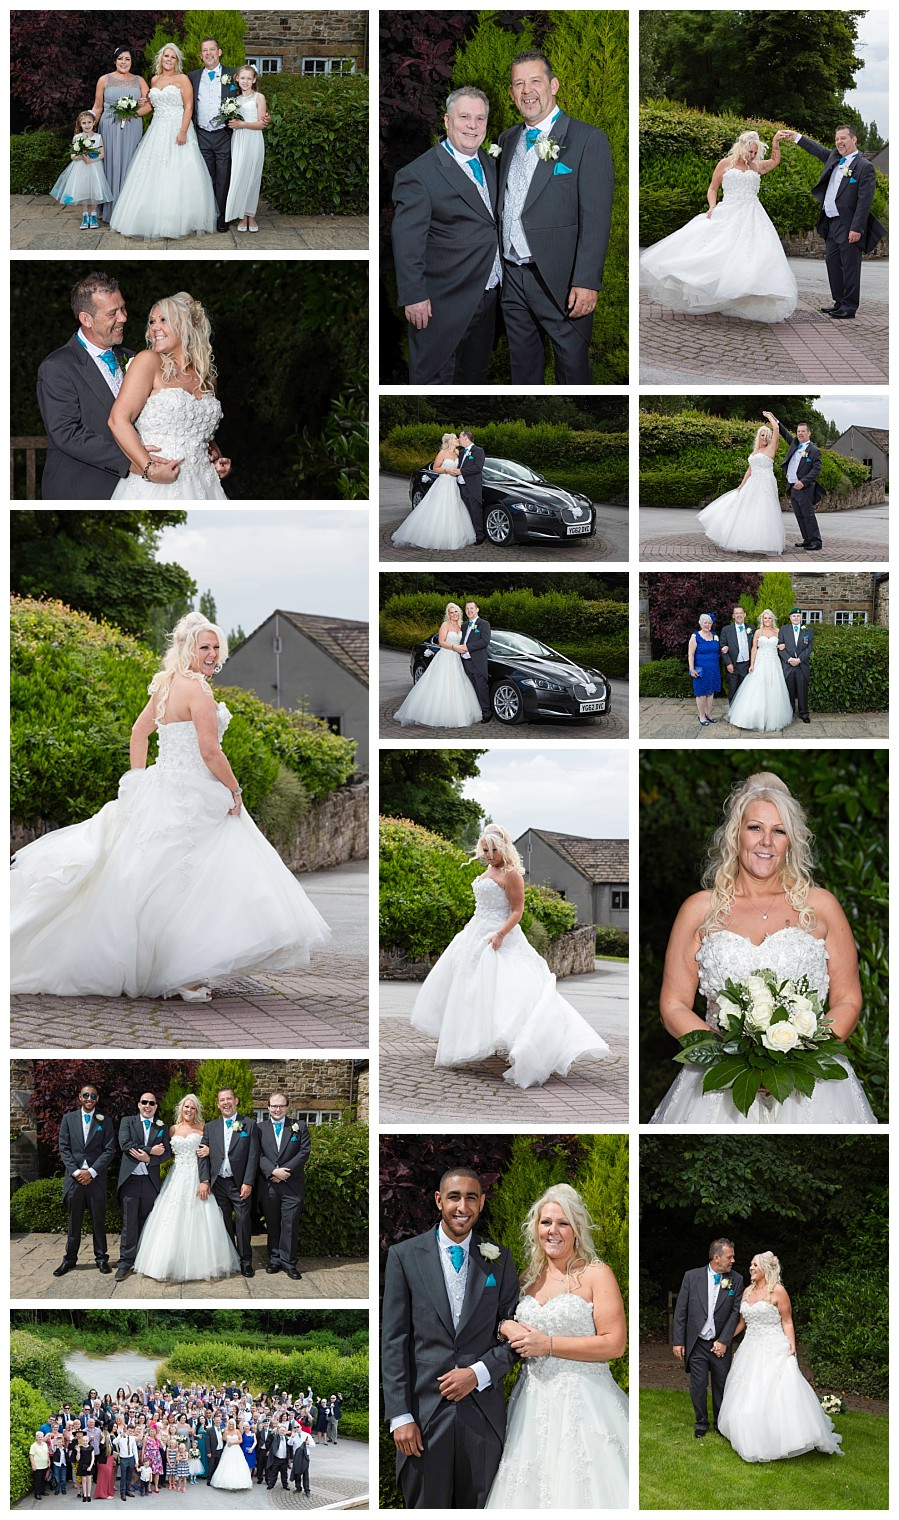 Wedding Photography Tankersley Manor Hotel, wedding photographers Barnsley Tankersley Manor, wedding photos Tankersley Manor